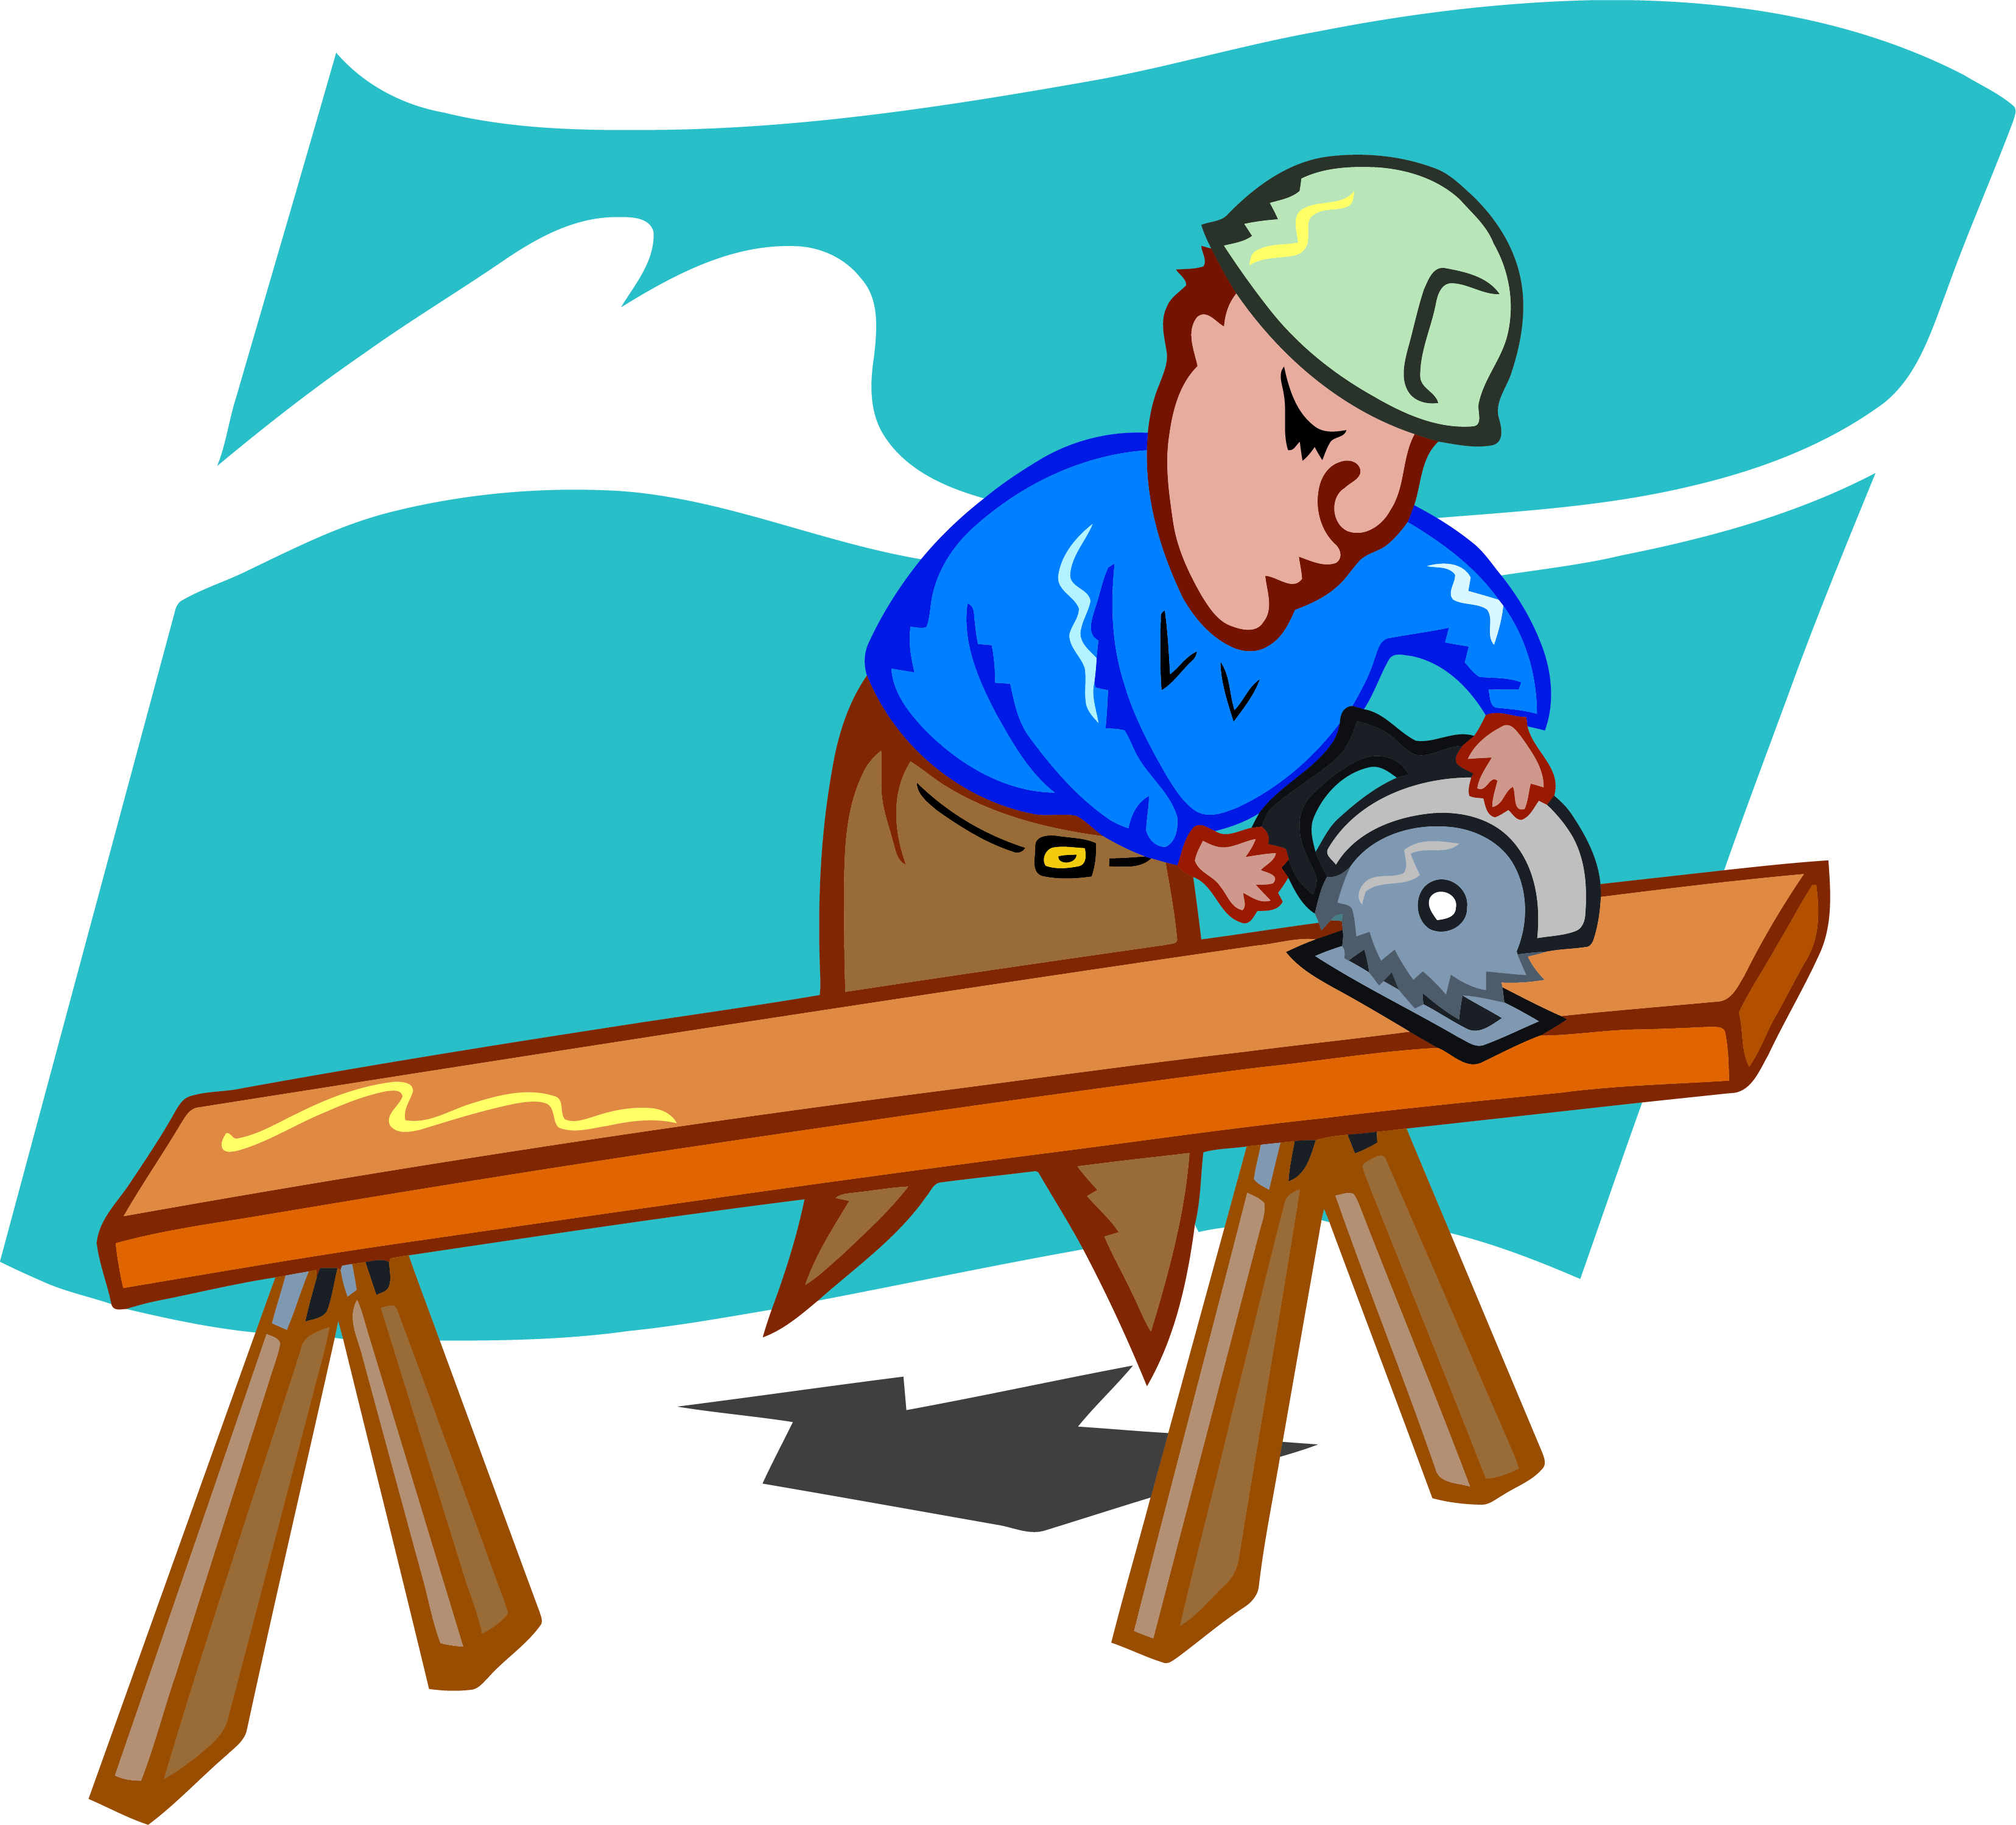 Man clipart carpenter. Sawing png clipartly comclipartly